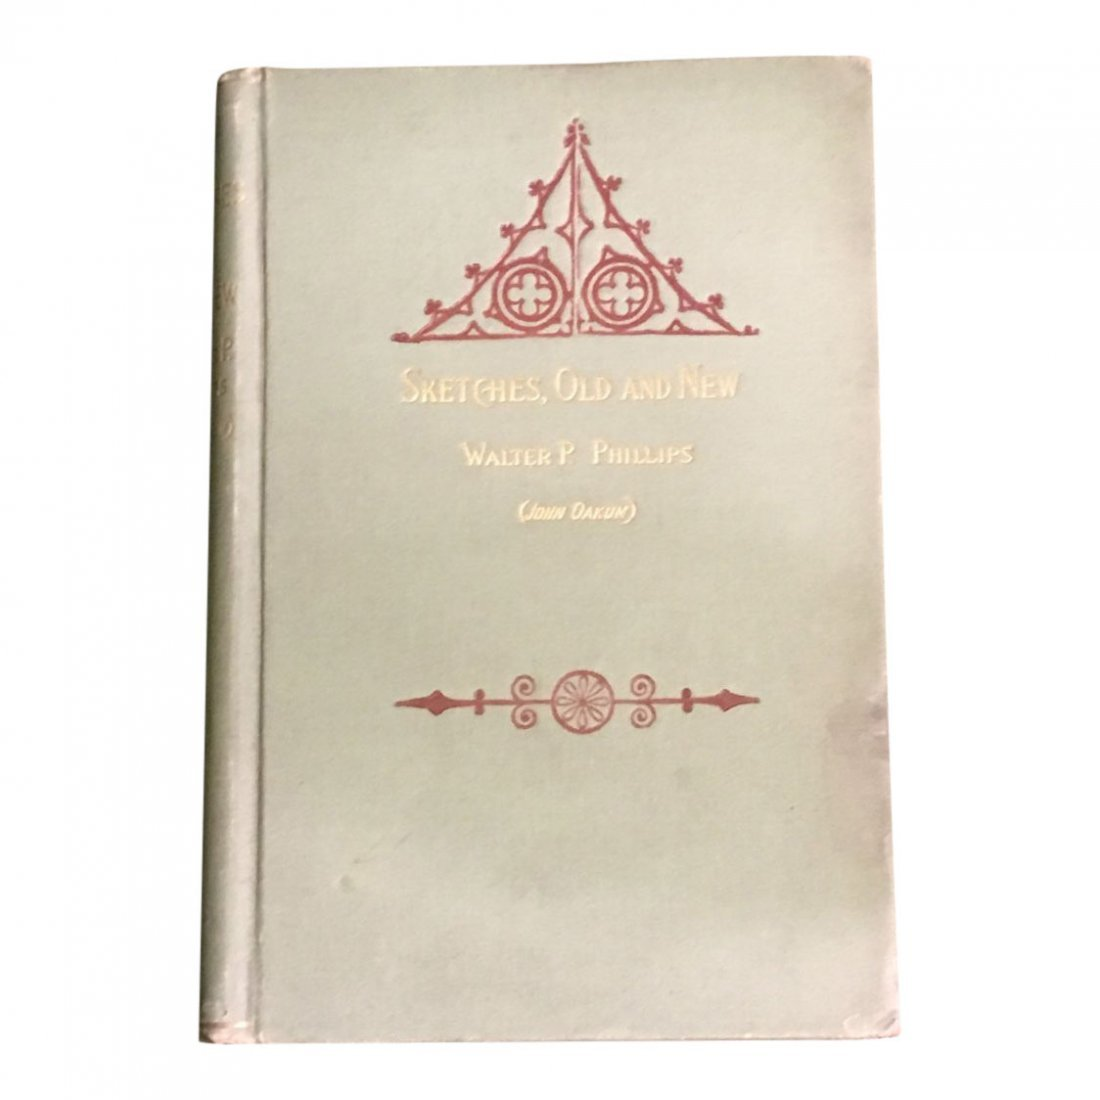 Sketches, Old and New by Walter P. Phillips, 1897